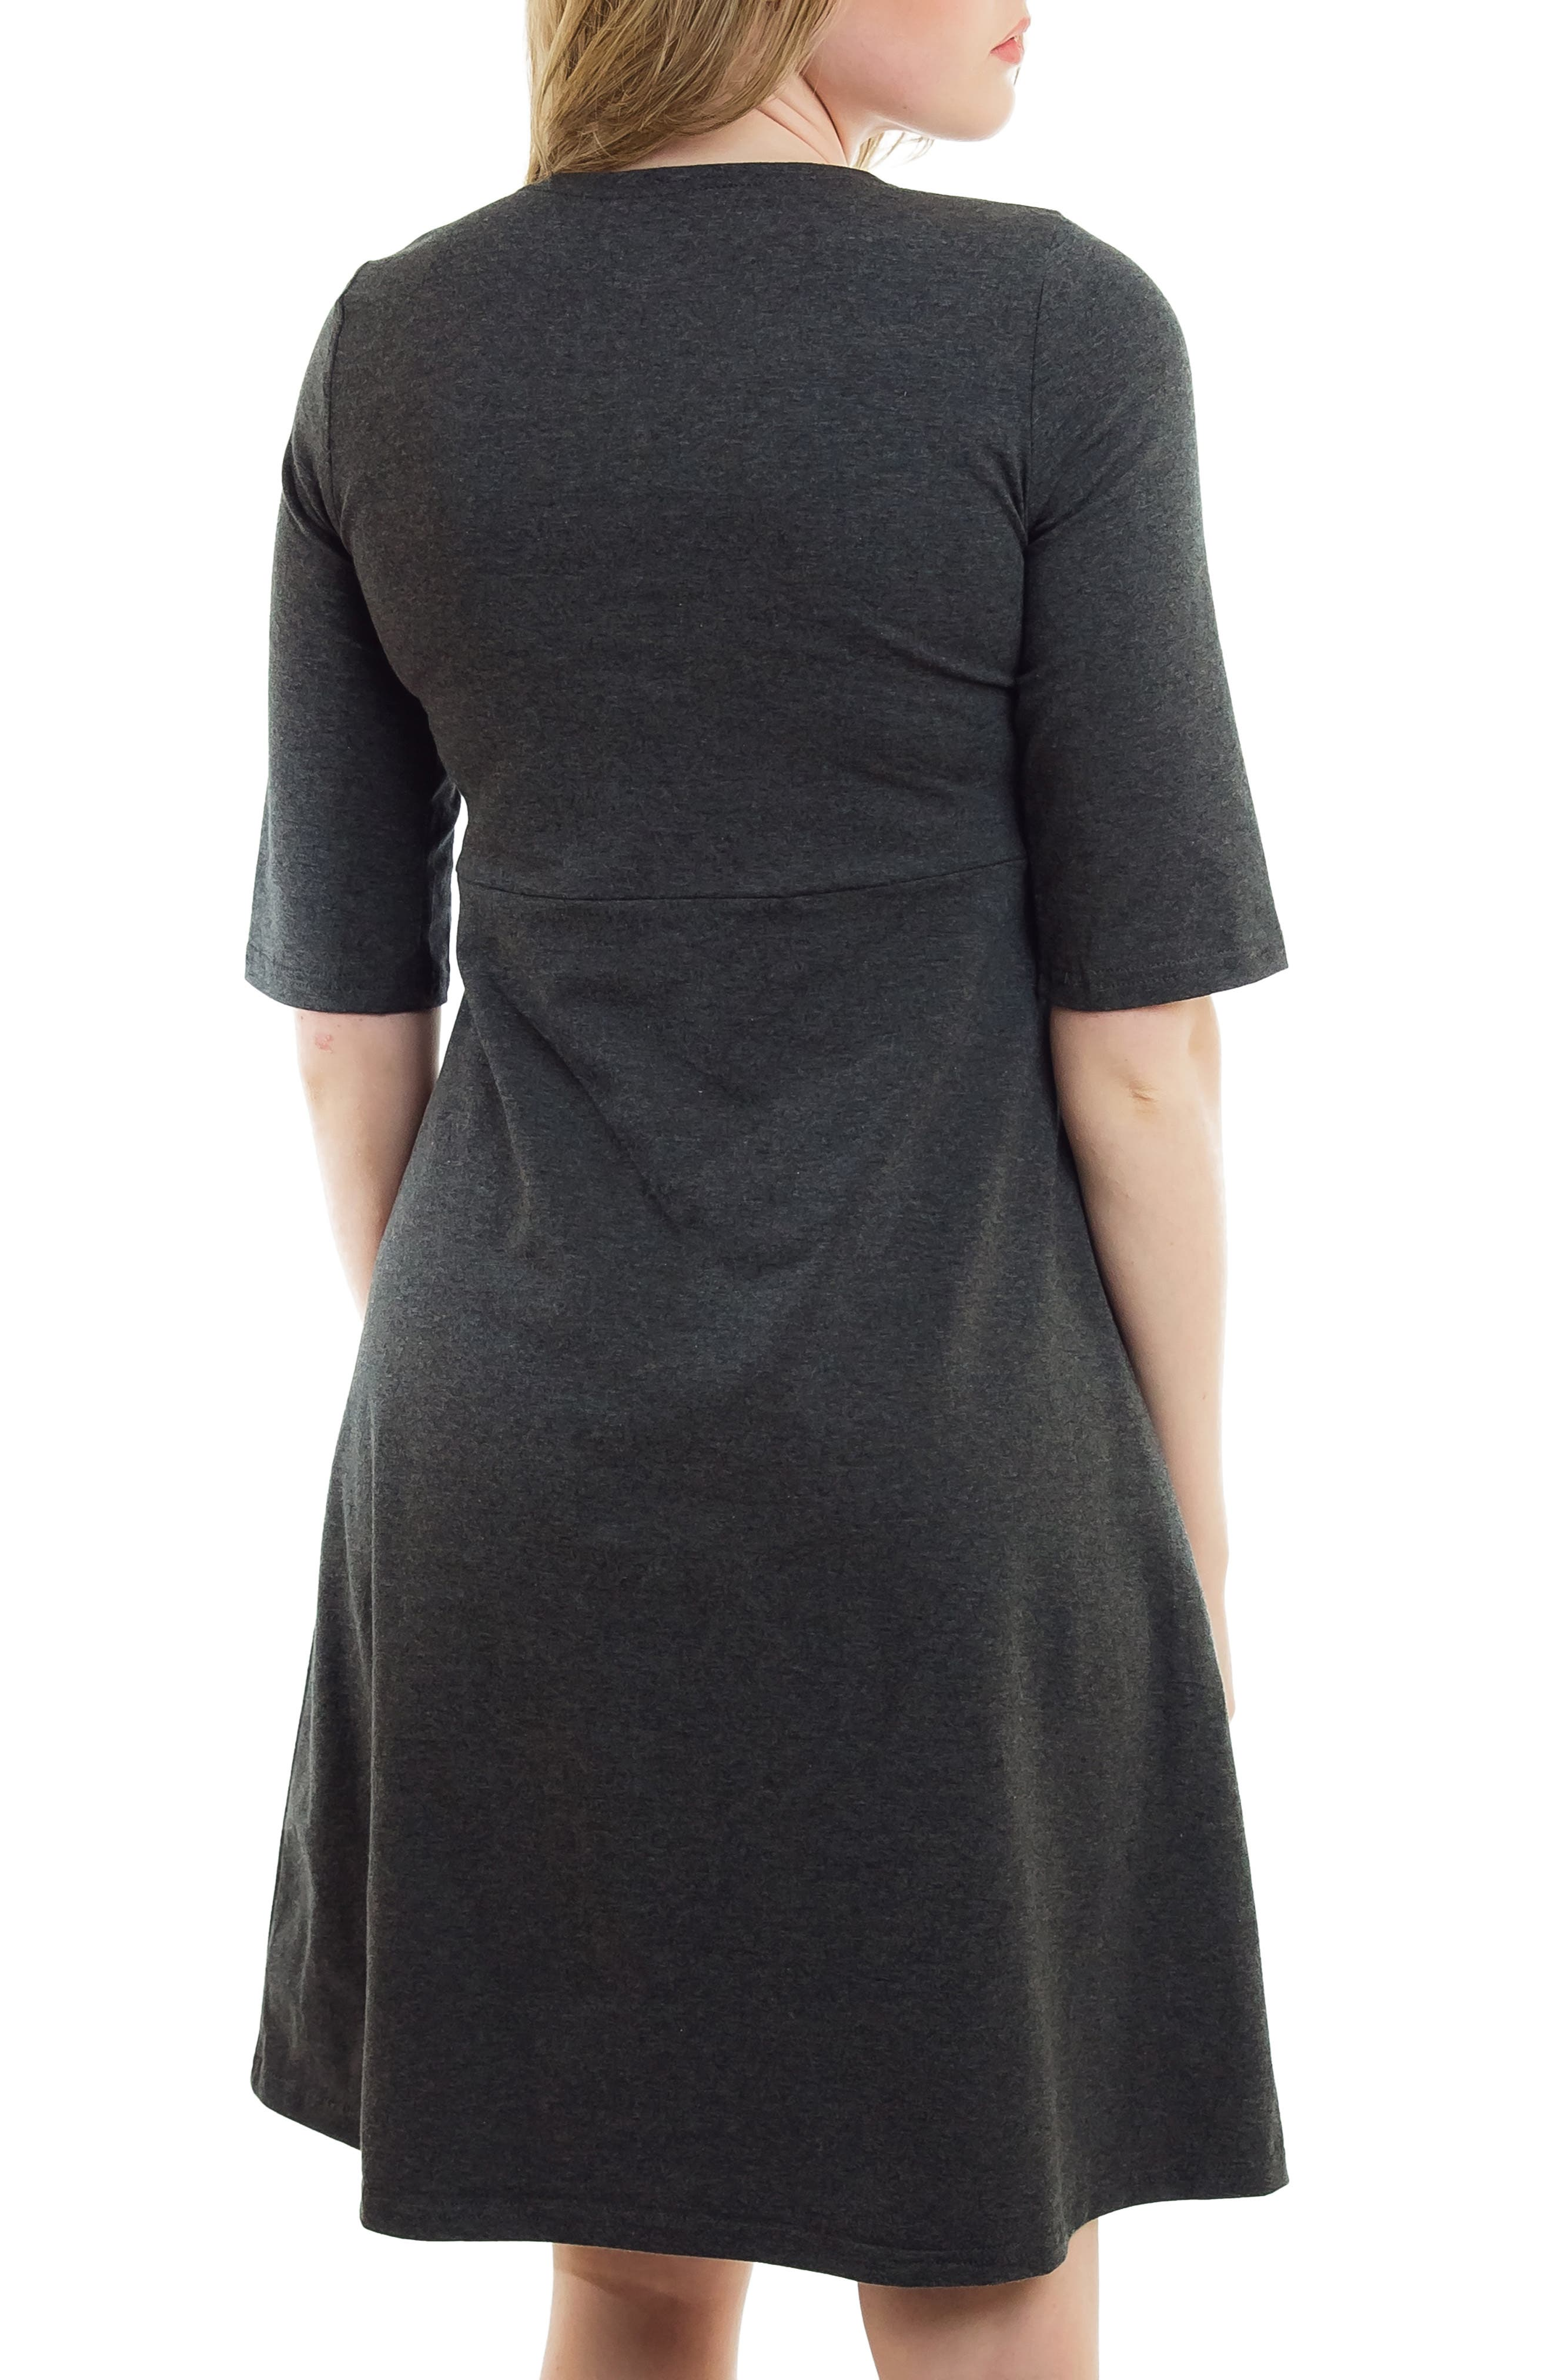 Crossover Maternity/Nursing Dress,                             Alternate thumbnail 2, color,                             HEATHER CHARCOAL